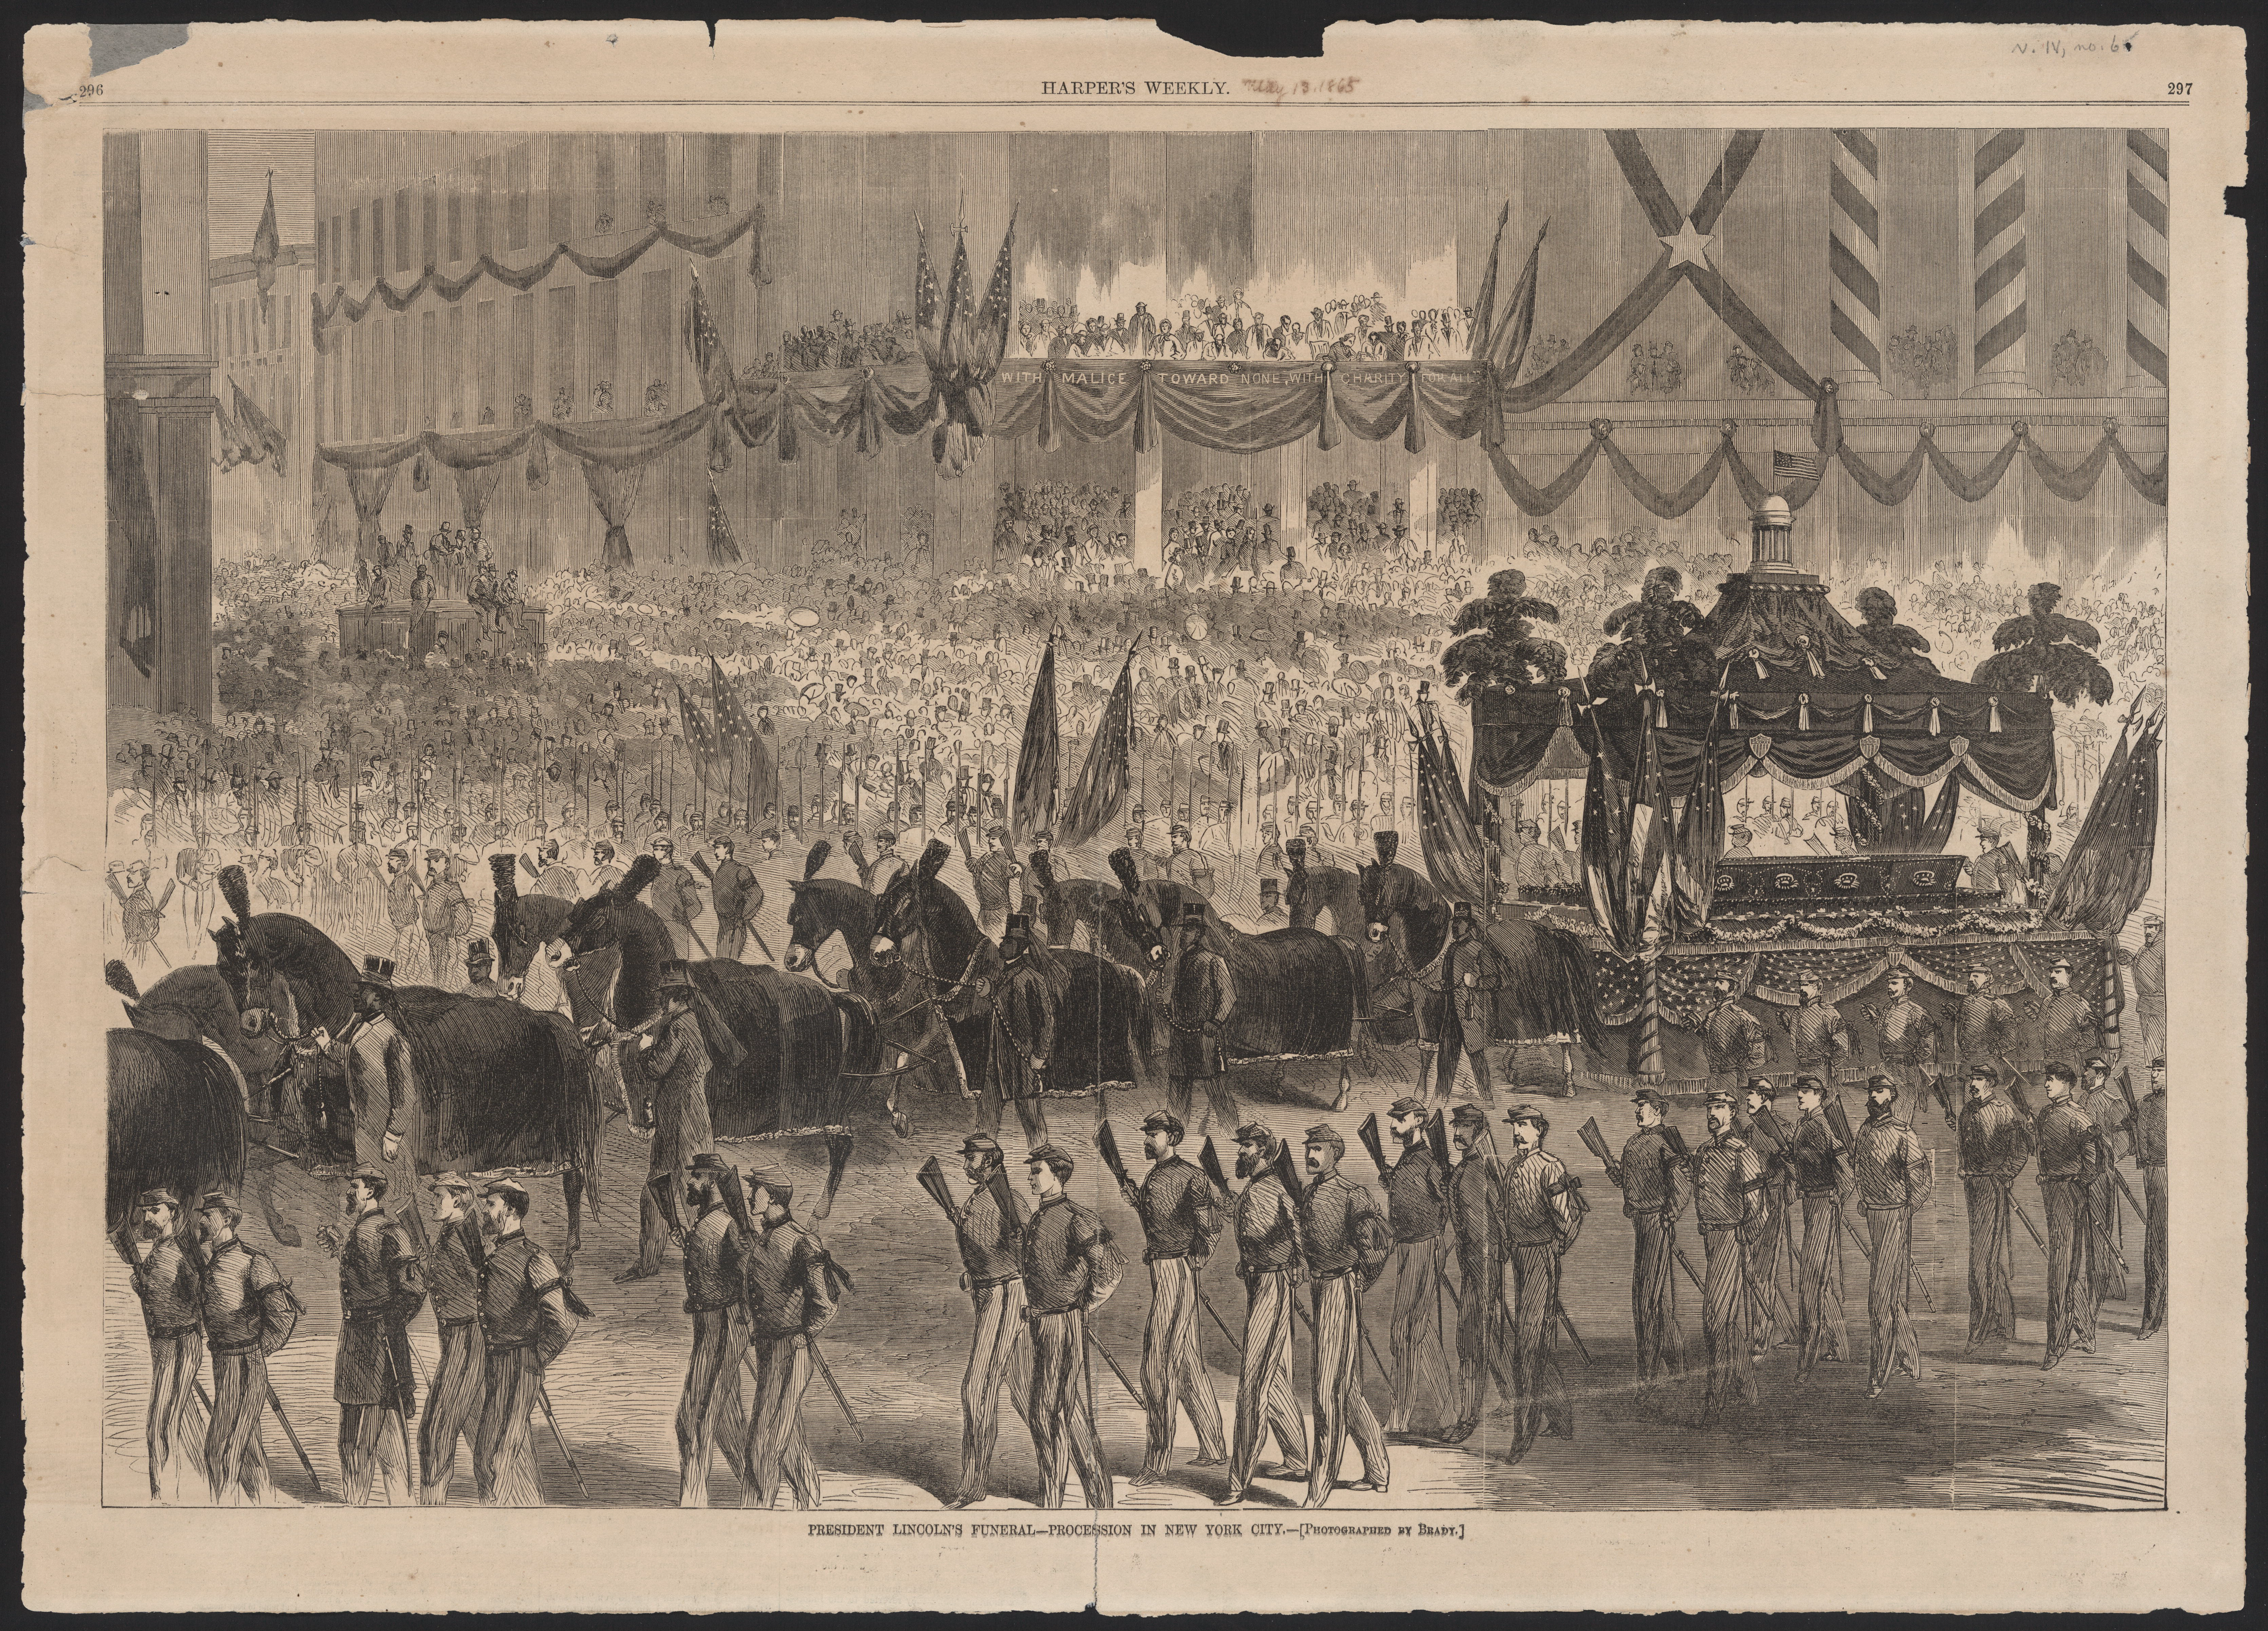 President Lincoln's funeral. [Harper's Weekly illustration.]